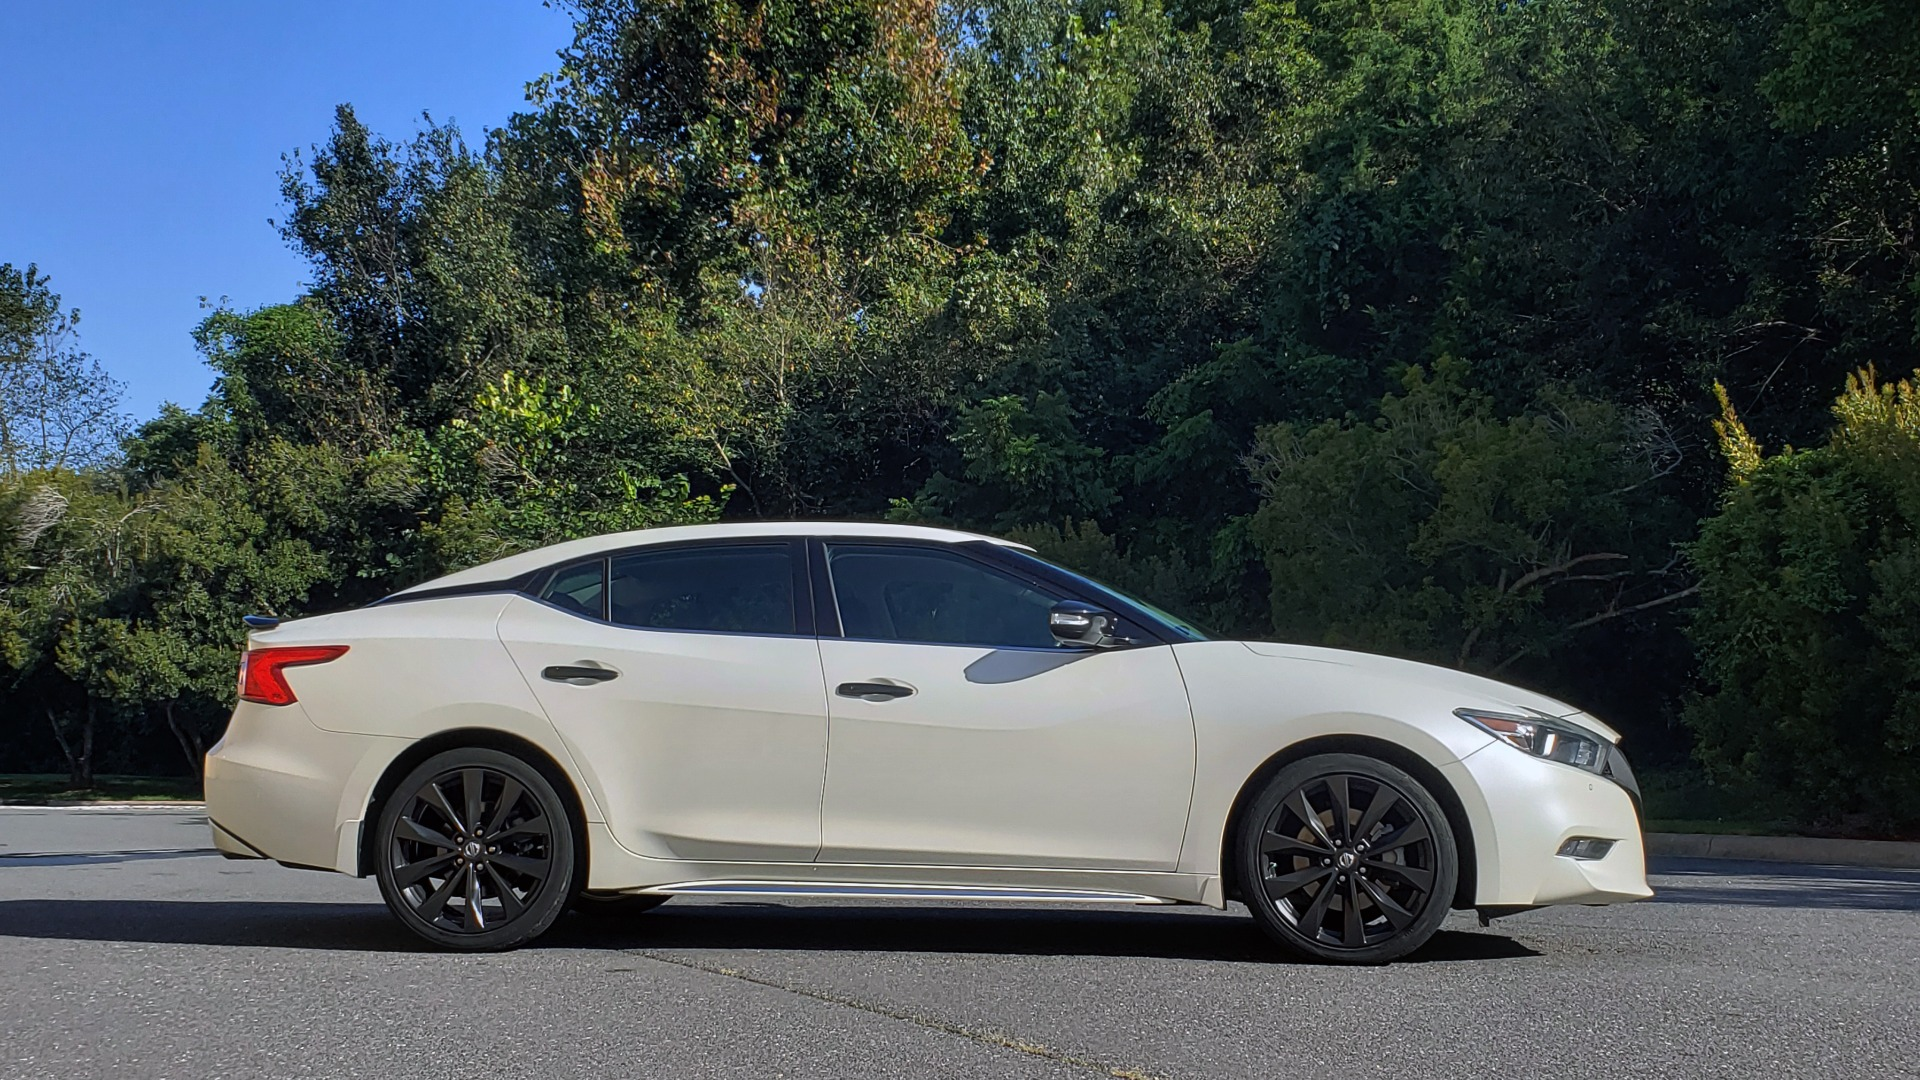 Used 2016 Nissan MAXIMA 3.5 SR / NAV / BOSE / VENT STS / CVT / REARVIEW for sale Sold at Formula Imports in Charlotte NC 28227 11